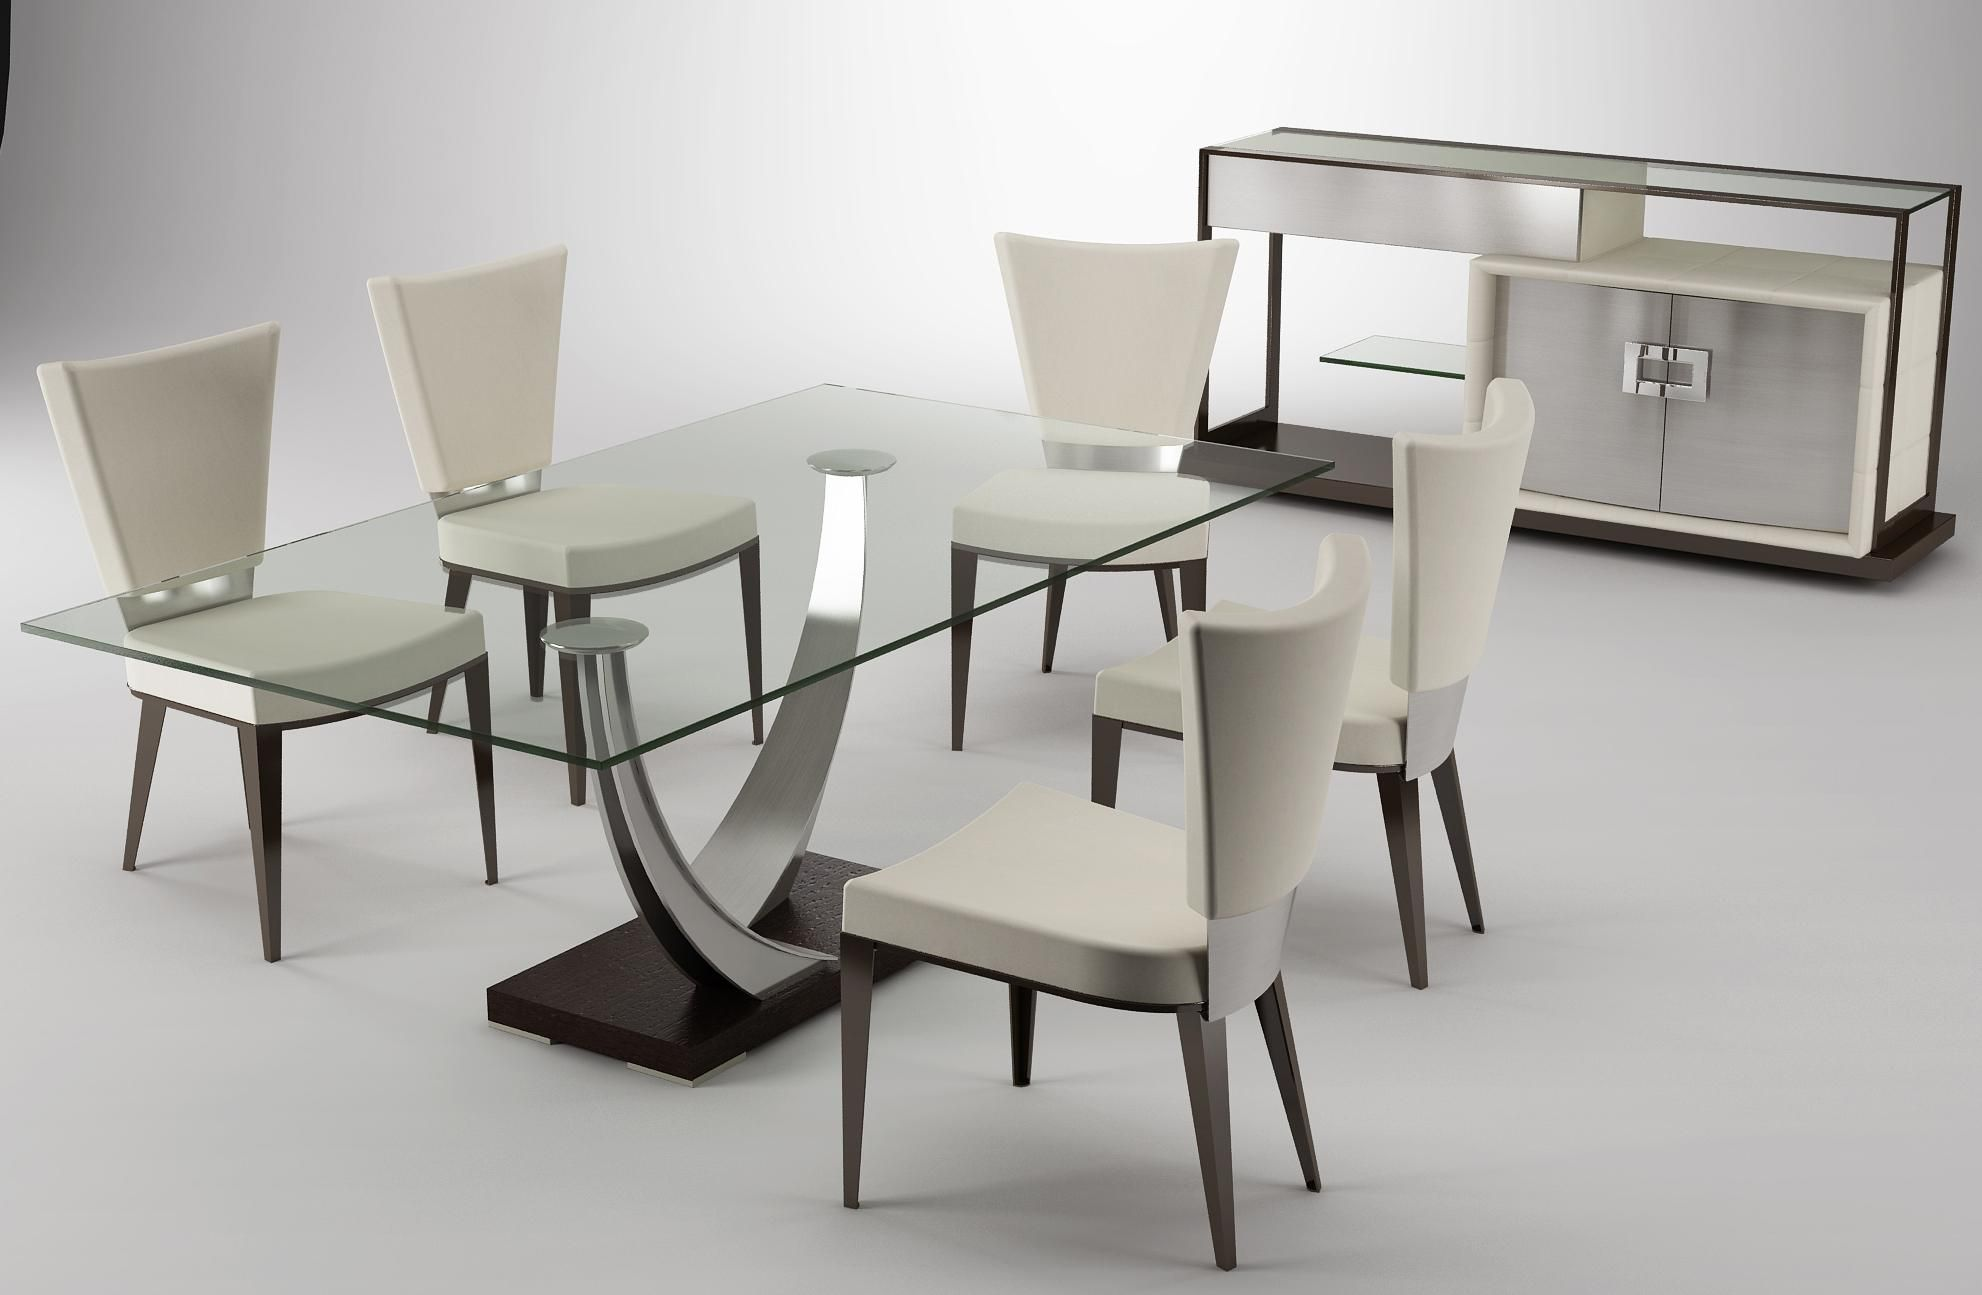 Amazing modern stylish dining room table set designs elite for Modern dining table and chairs set